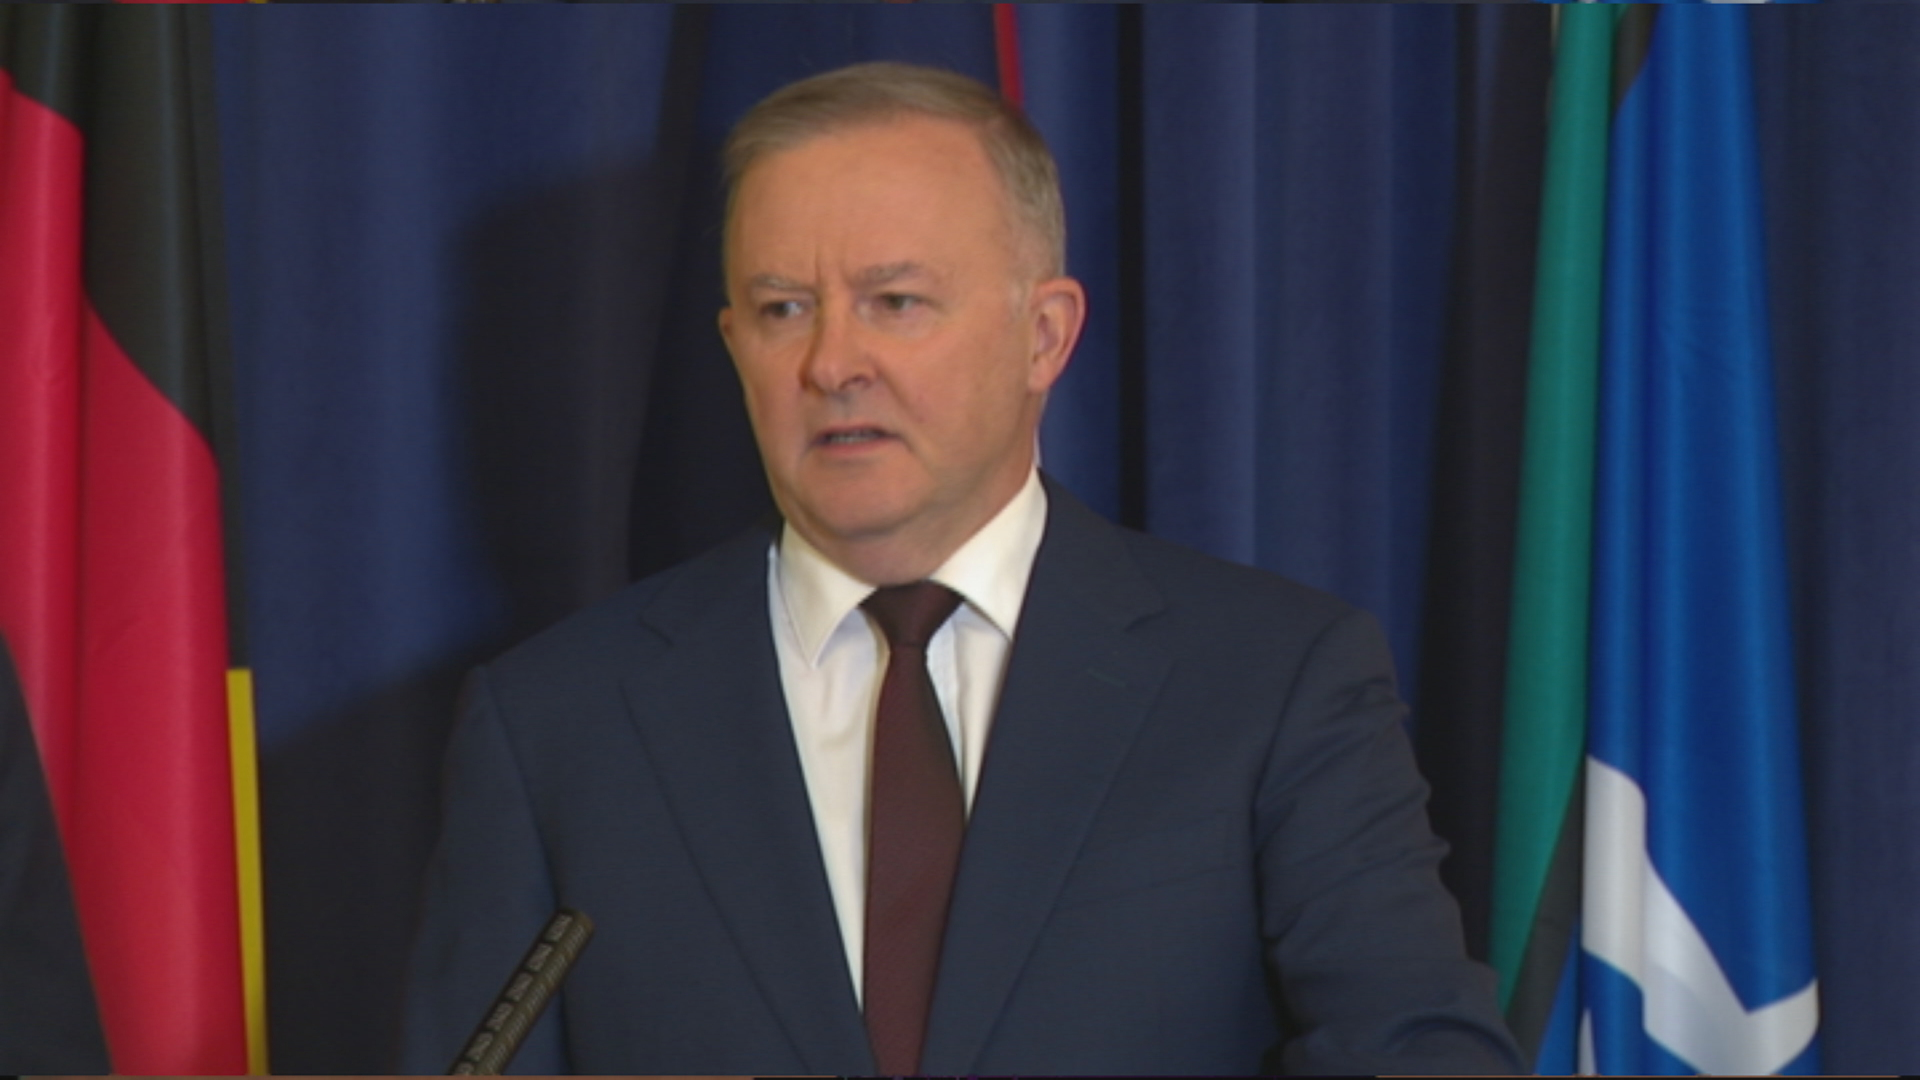 Labor Cabinet reshuffle announced